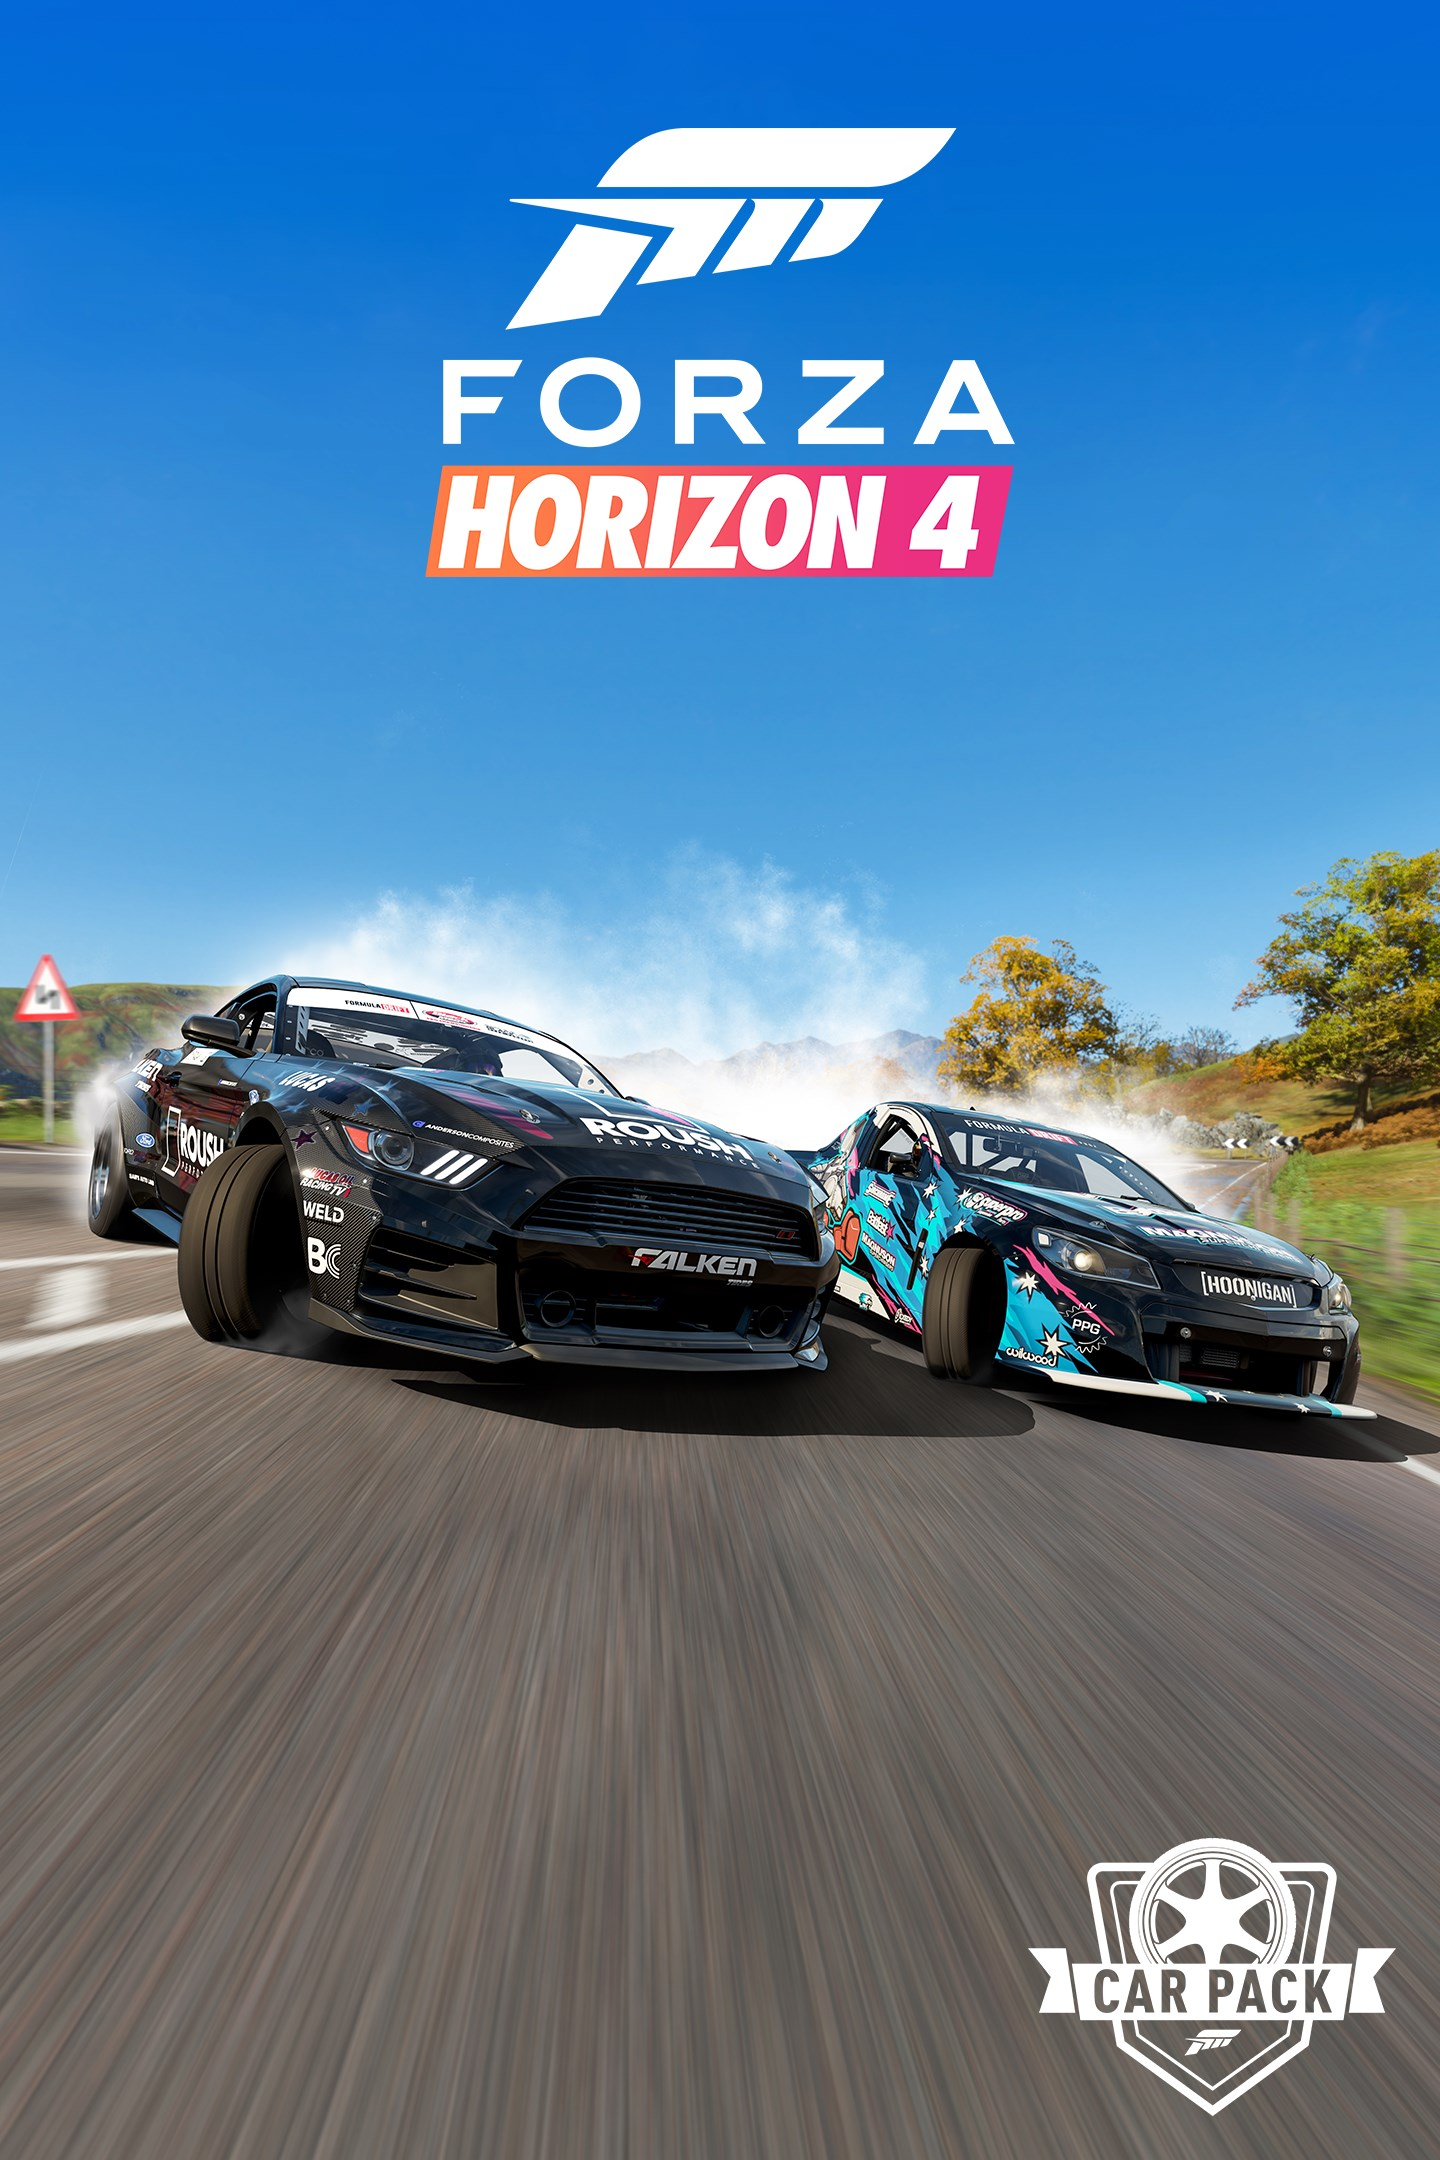 Buy Forza Horizon 4 Formula Drift Car Pack - Microsoft Store